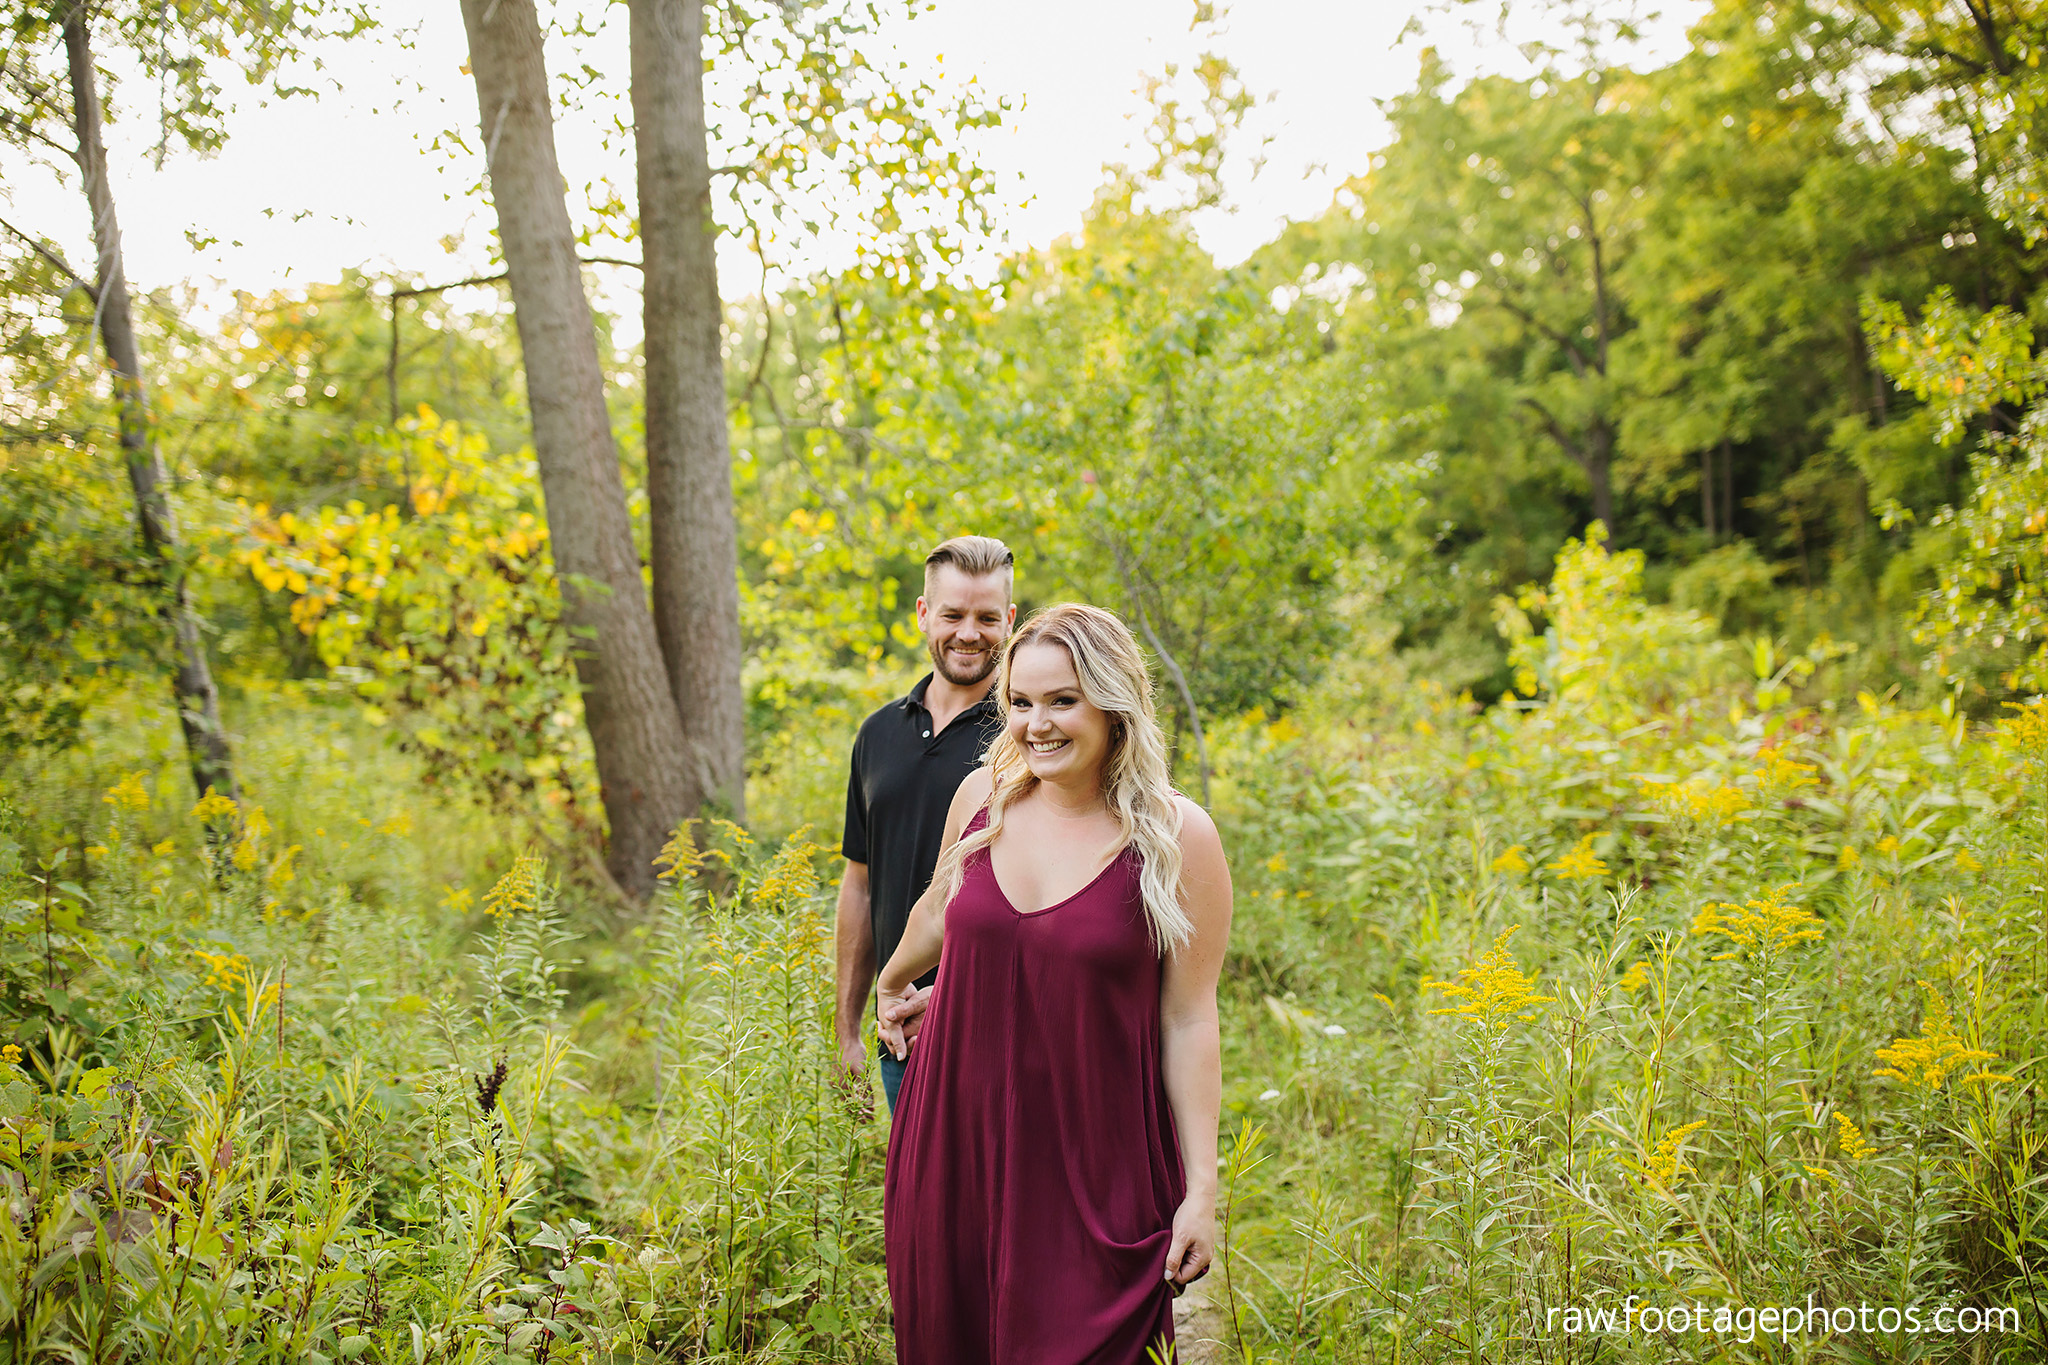 london_ontario_wedding_photographer-woodsy_engagement_session-e_session-engagement_photos-medway_creek-medway_heritage_forest-raw_forest_photography020.jpg